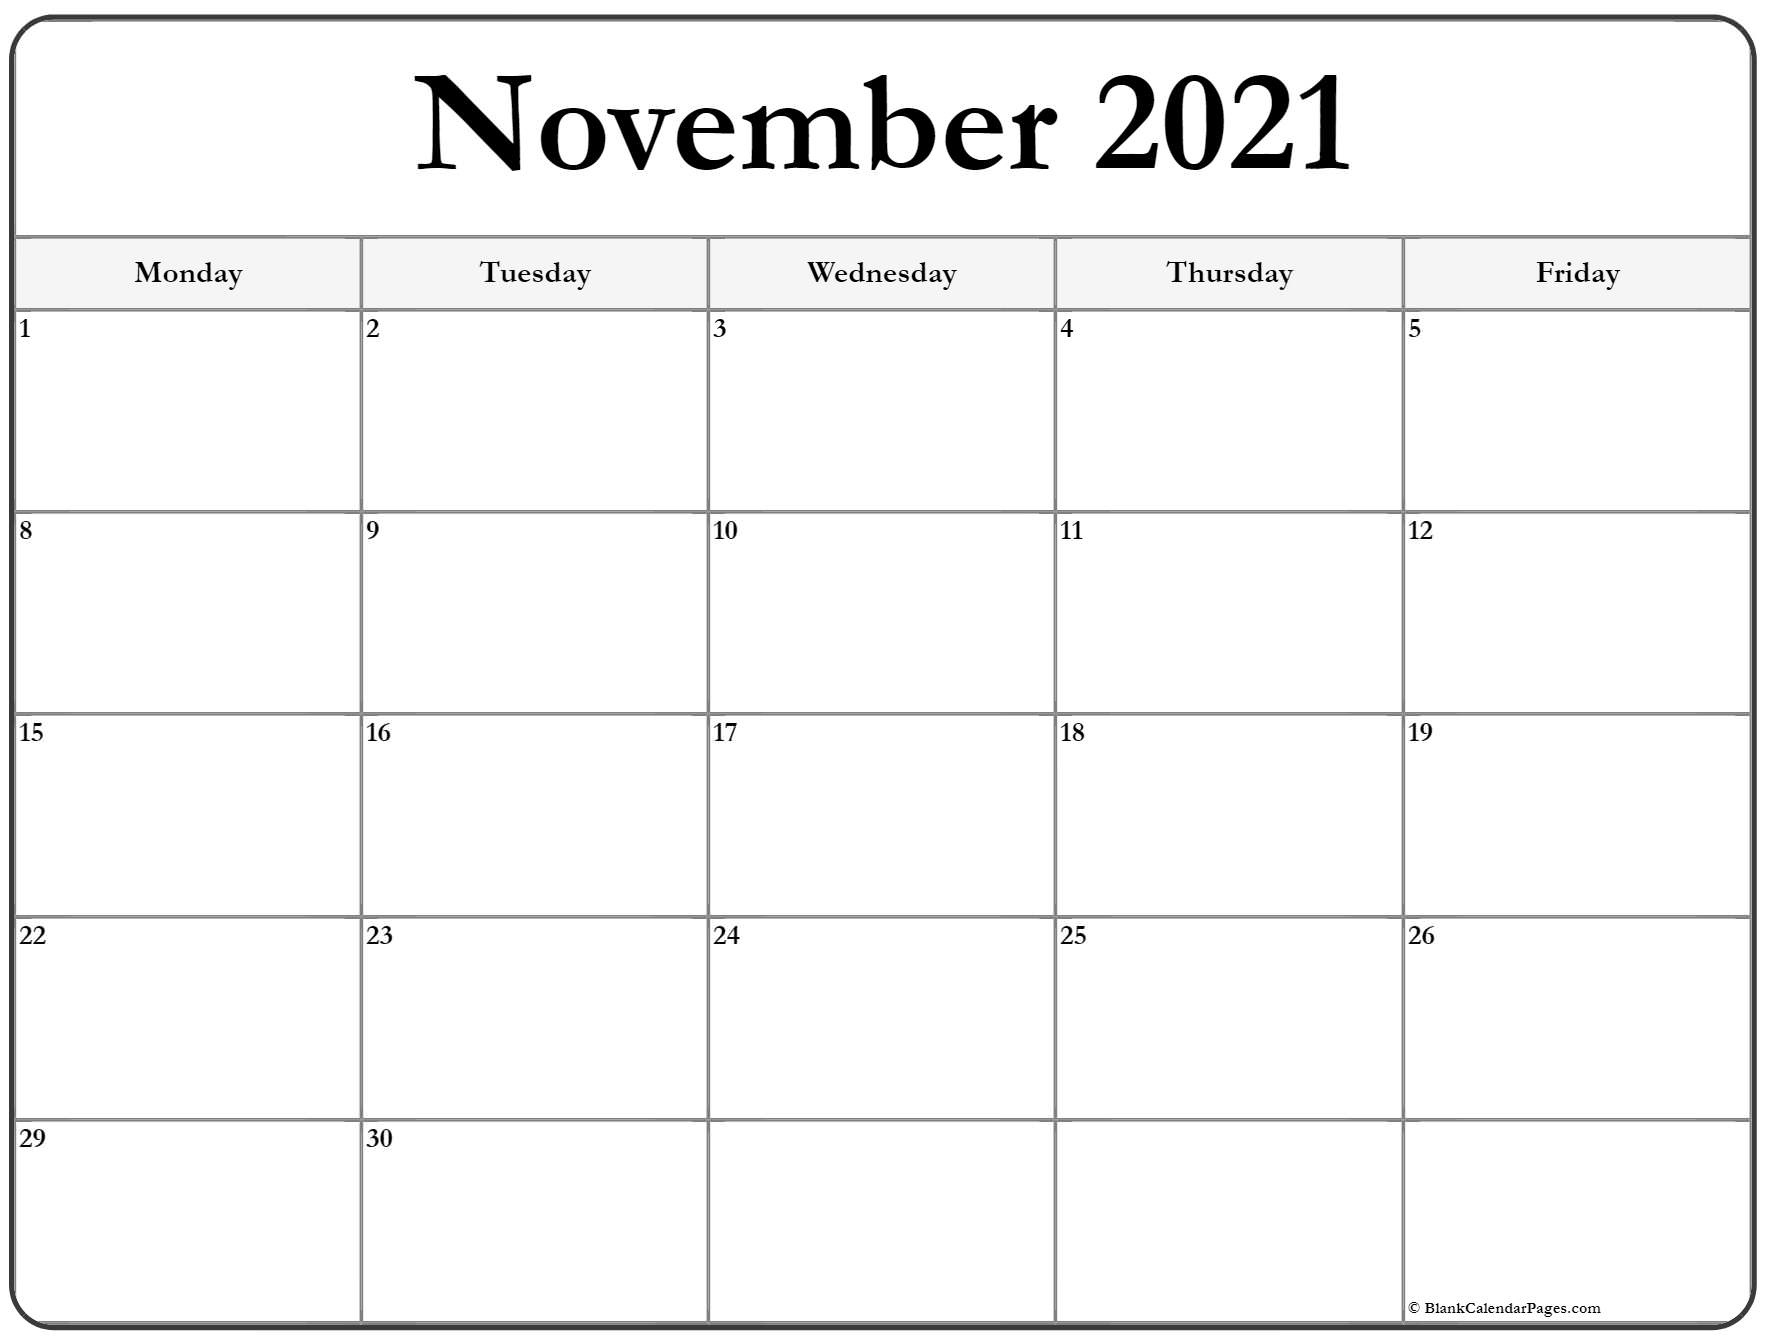 November 2020 Monday Calendar | Monday to Sunday